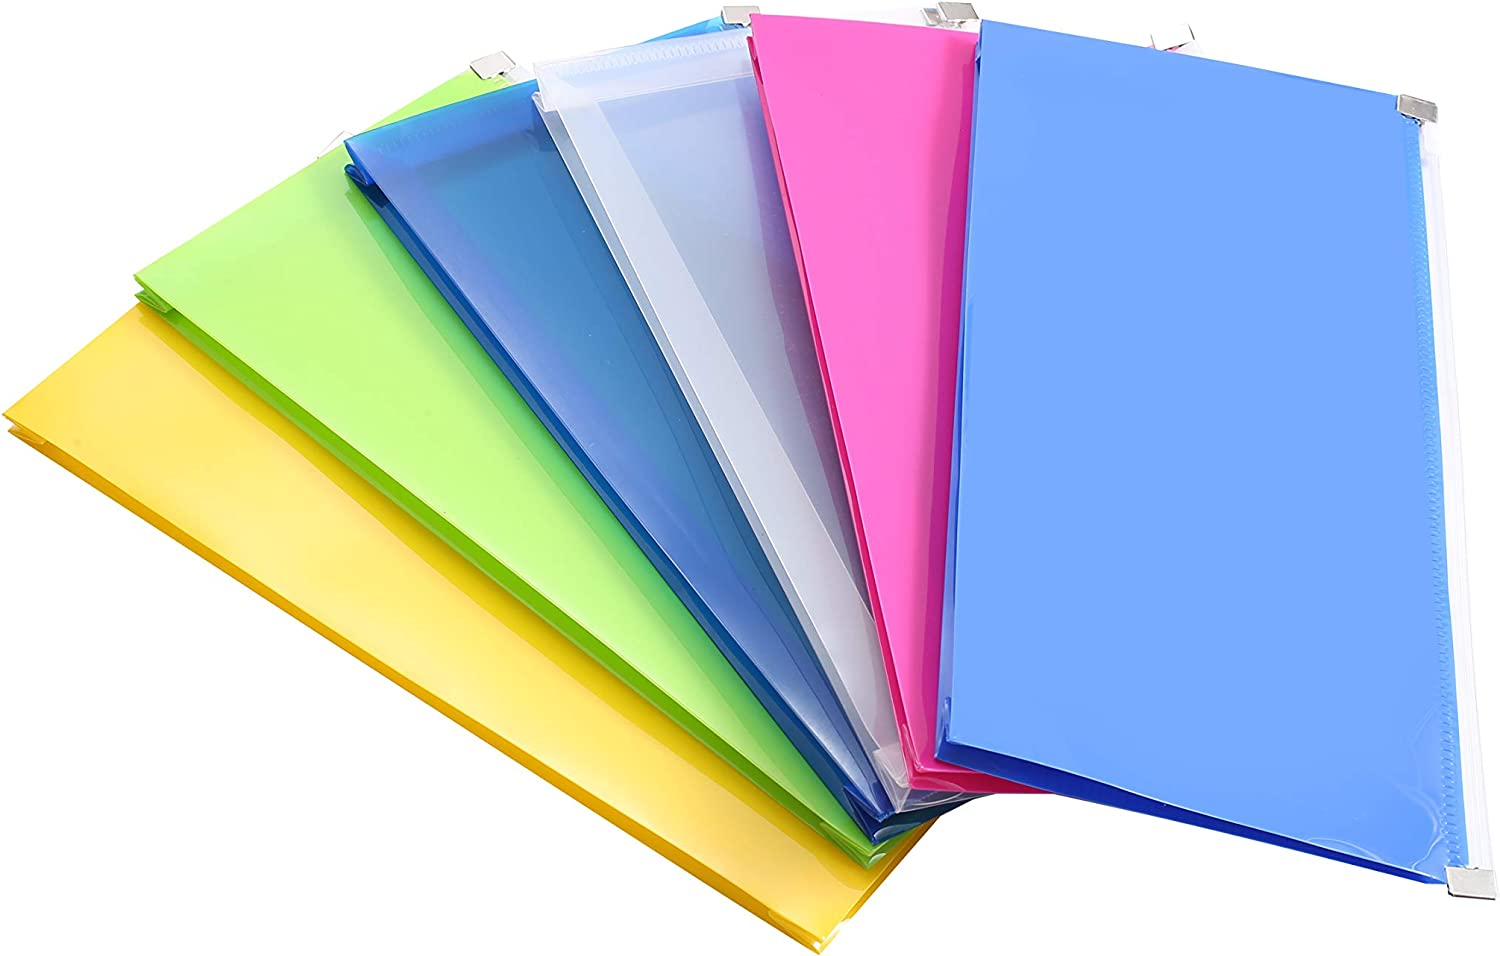 "Purida Poly Zipper Envelope, 5 x 10"" Plastic Envelopes with 1 1/5"" Expansion for Home Office School Organization in 6 Assorted Colors, 6 Pack"